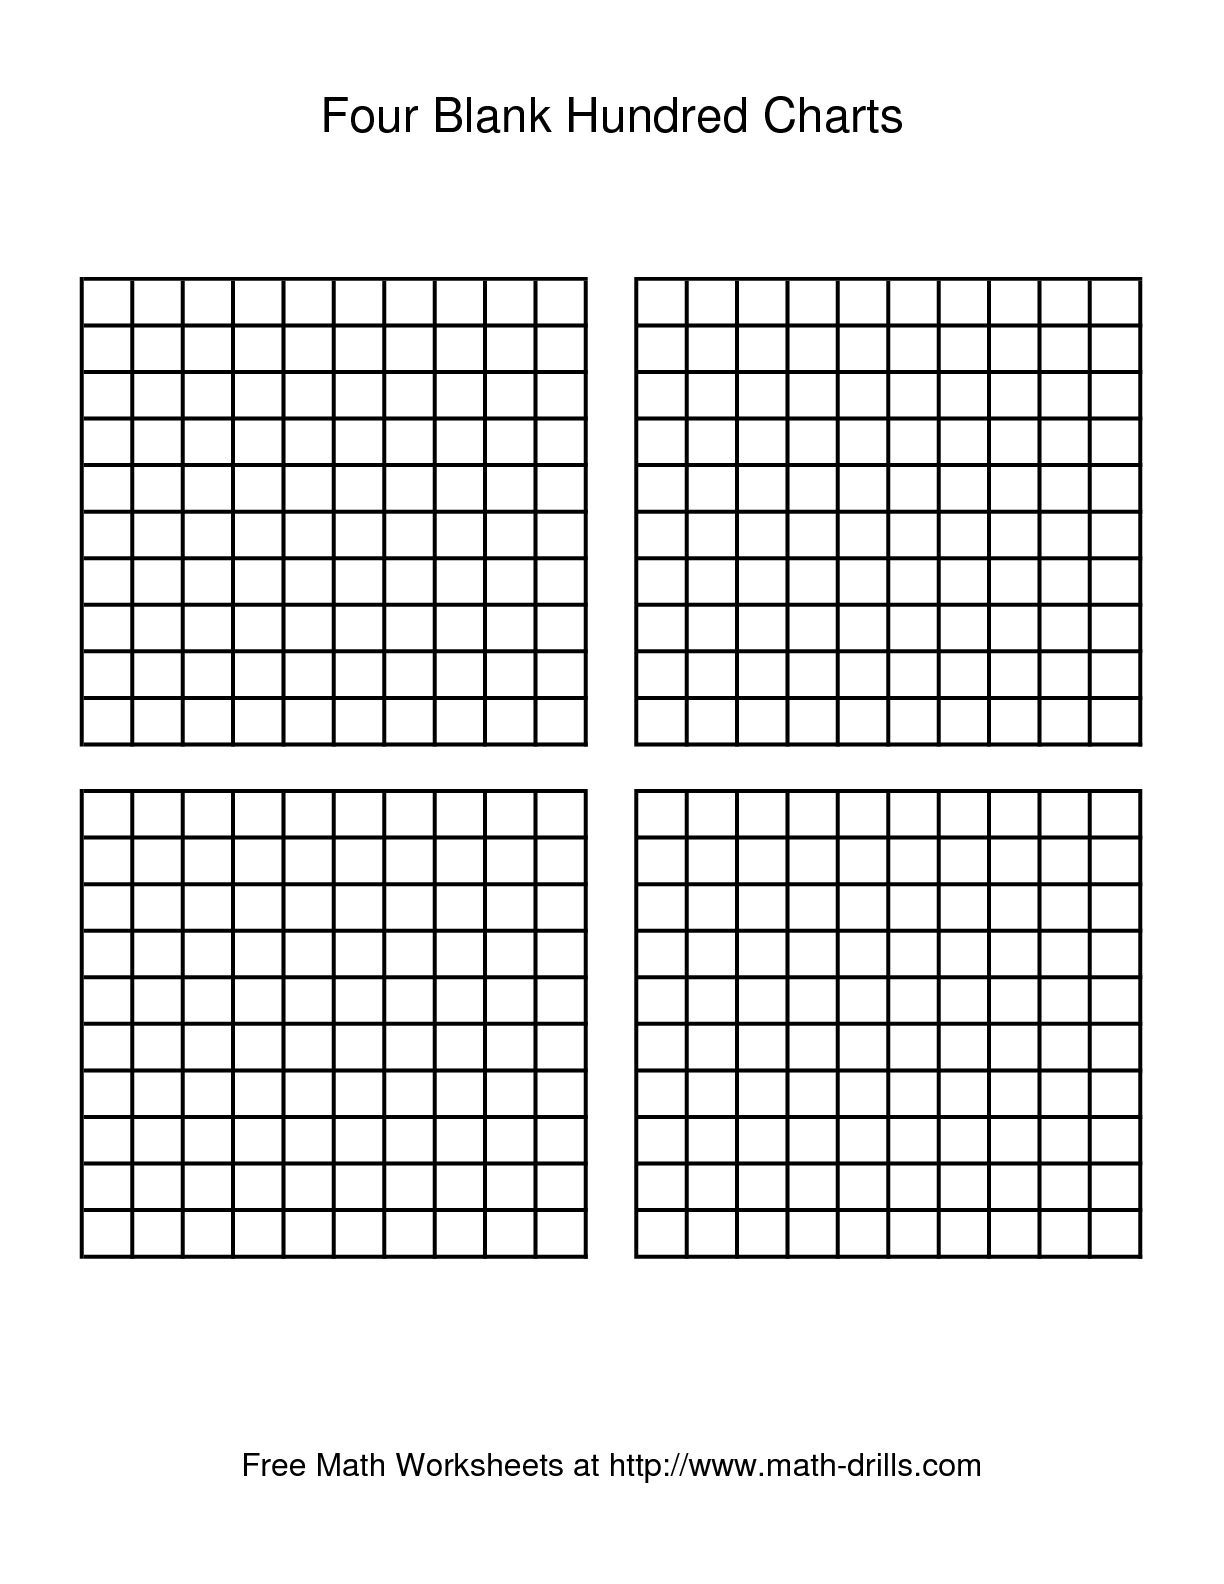 The Four Blank Hundred Charts Math Worksheet From The